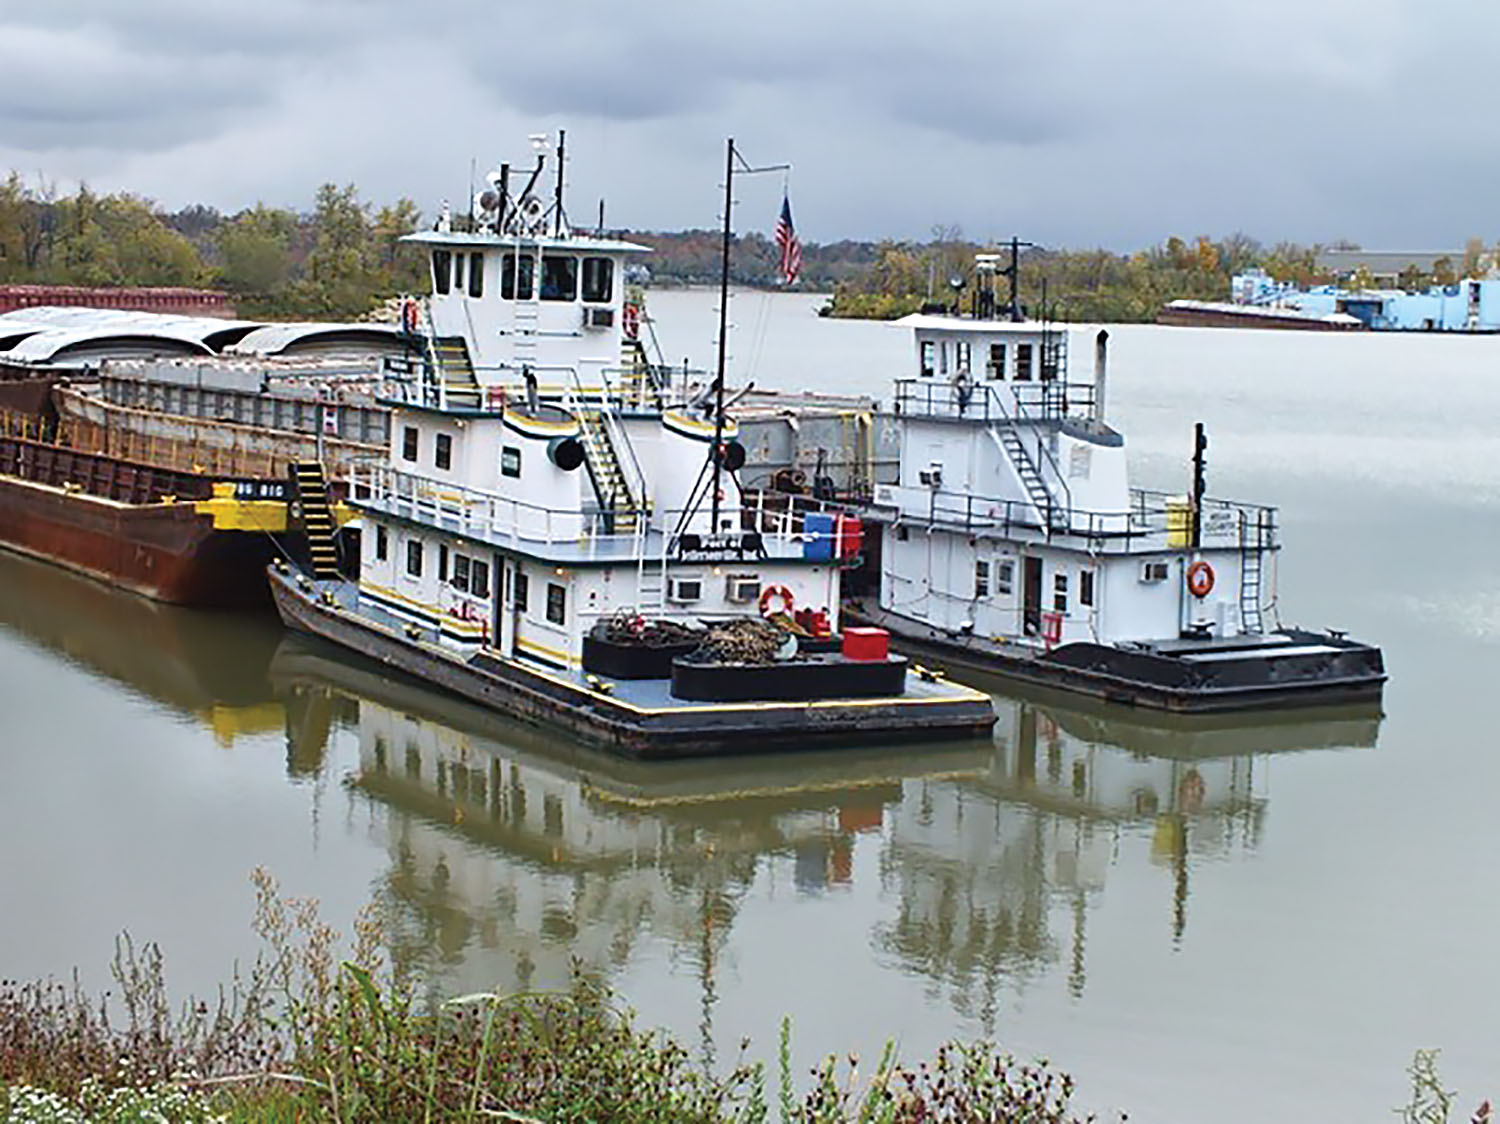 TPG Marine boats at work in Jeffersonville, Ind.